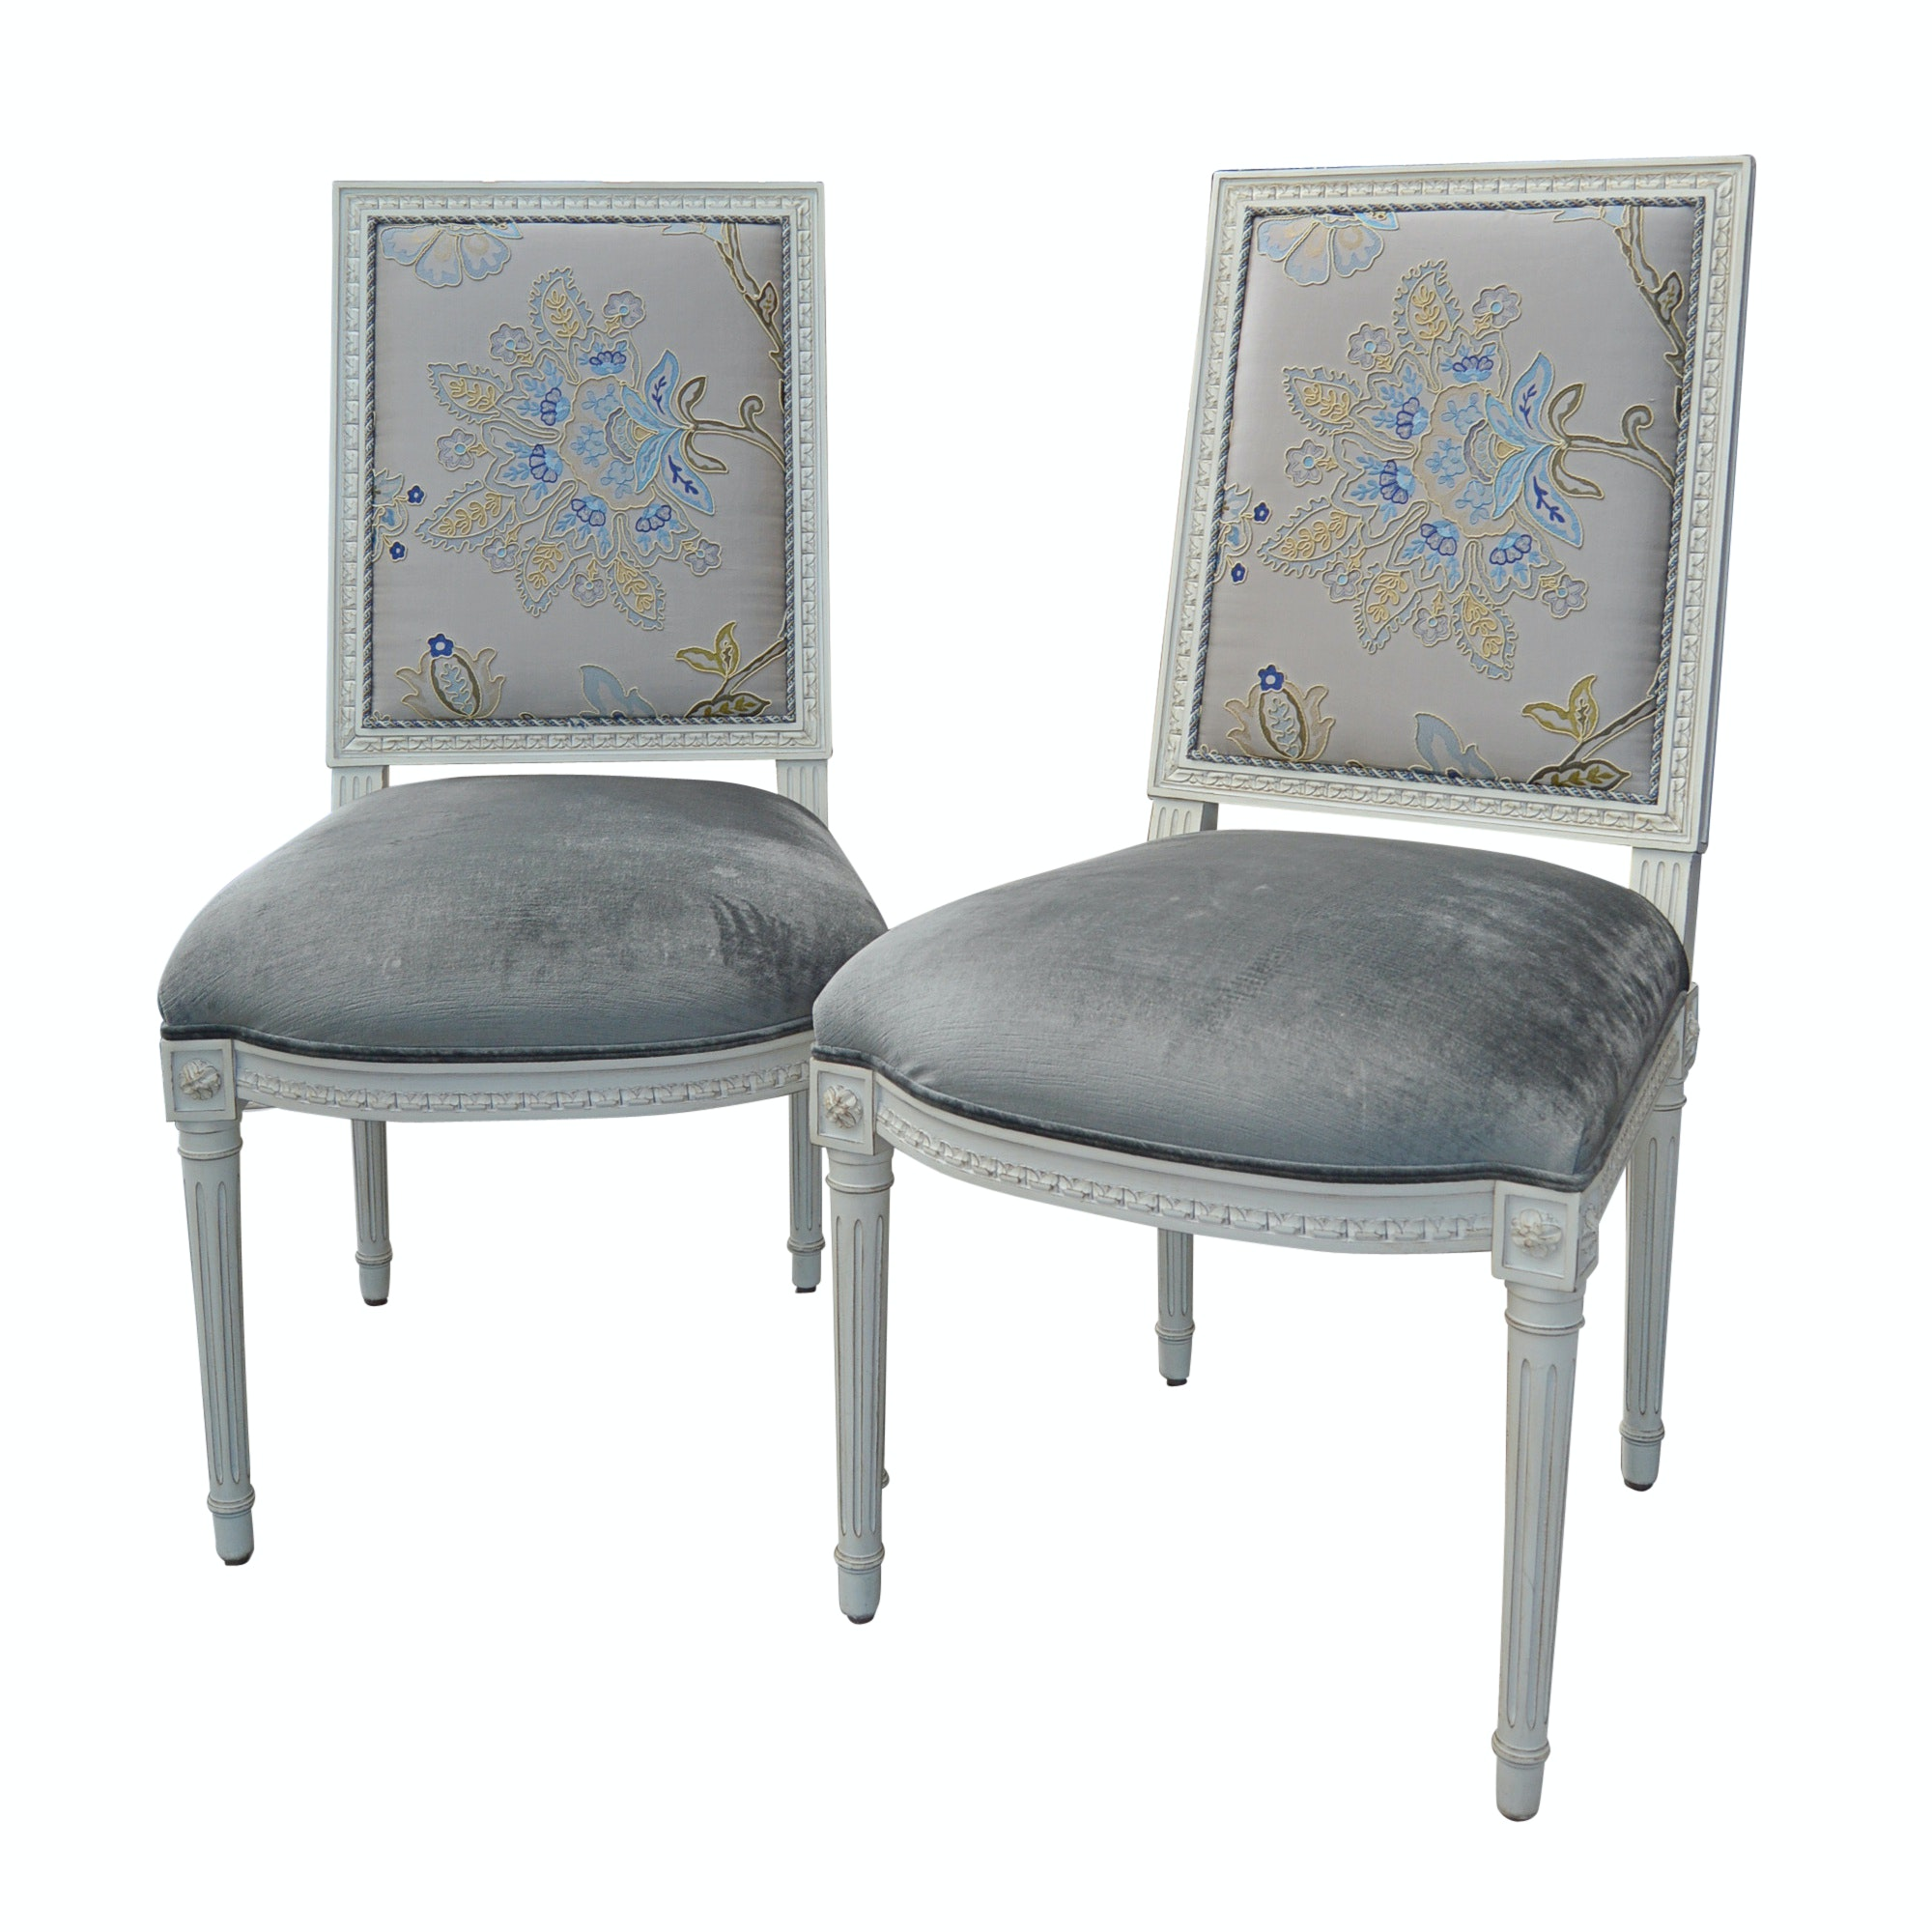 Pair of Louis XVI Style Side Chairs from Louis J. Solomon